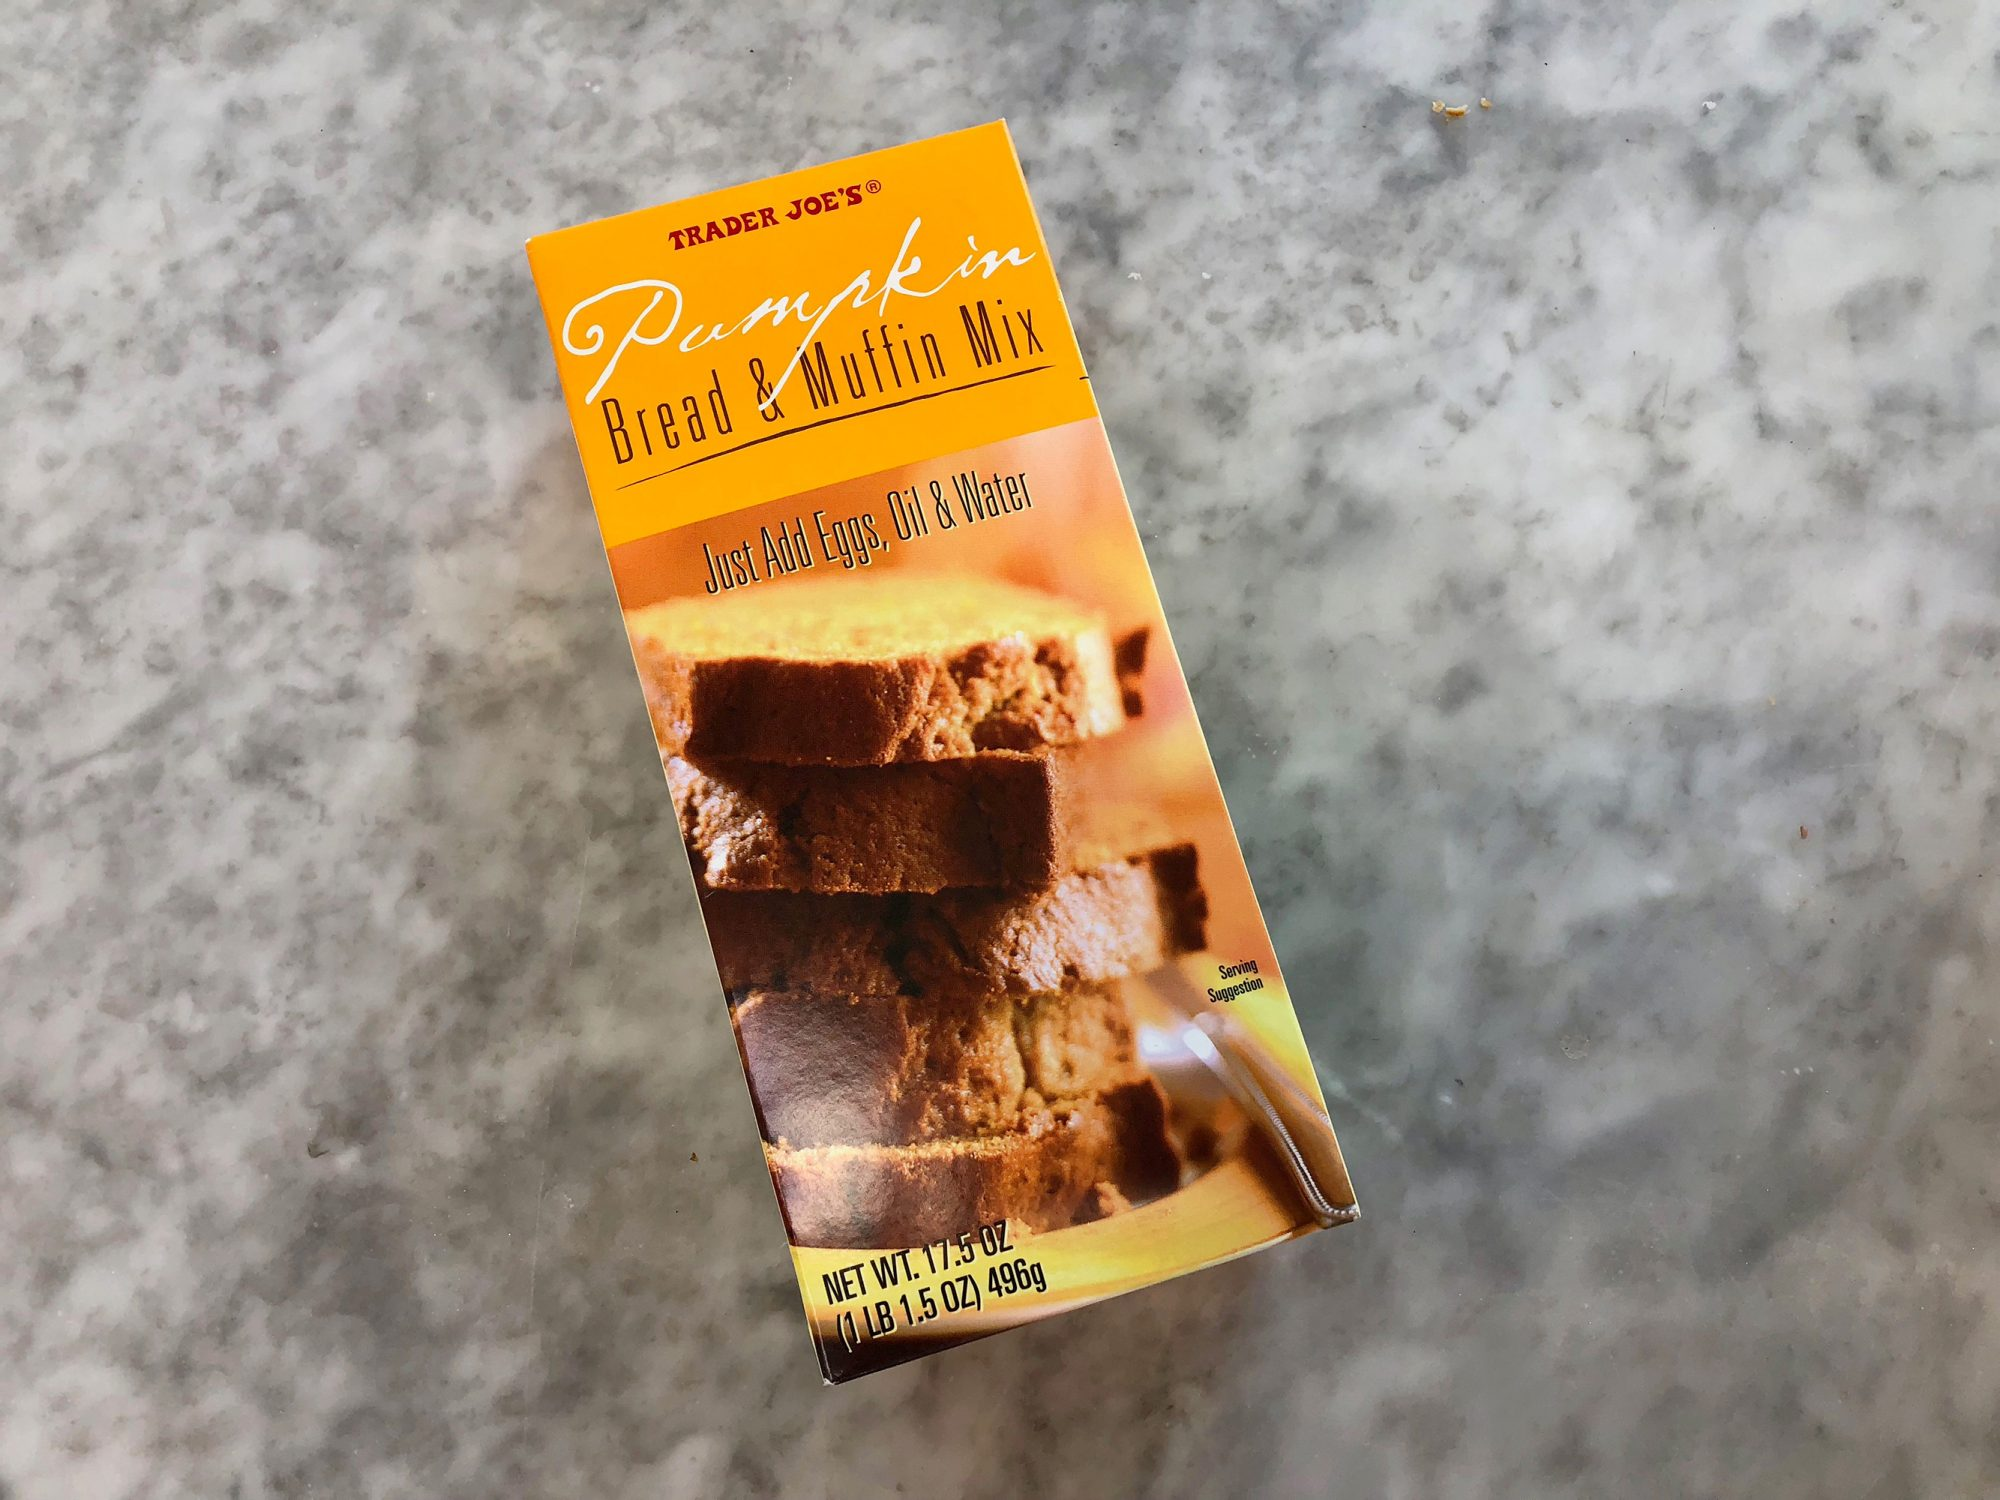 trader joes pumpkin bread and muffin mix